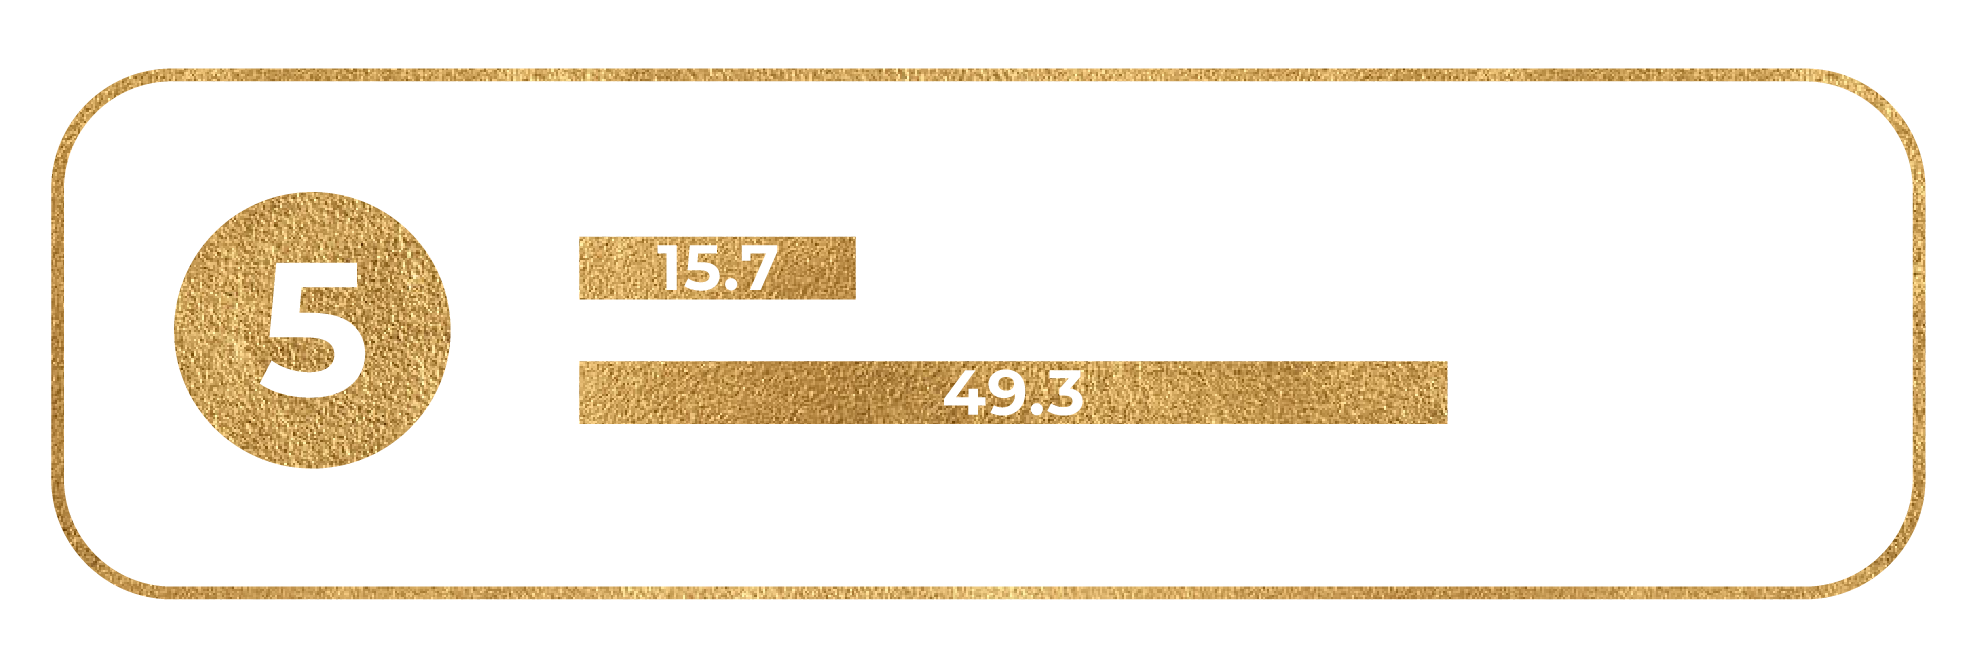 Ring_Size_5.png